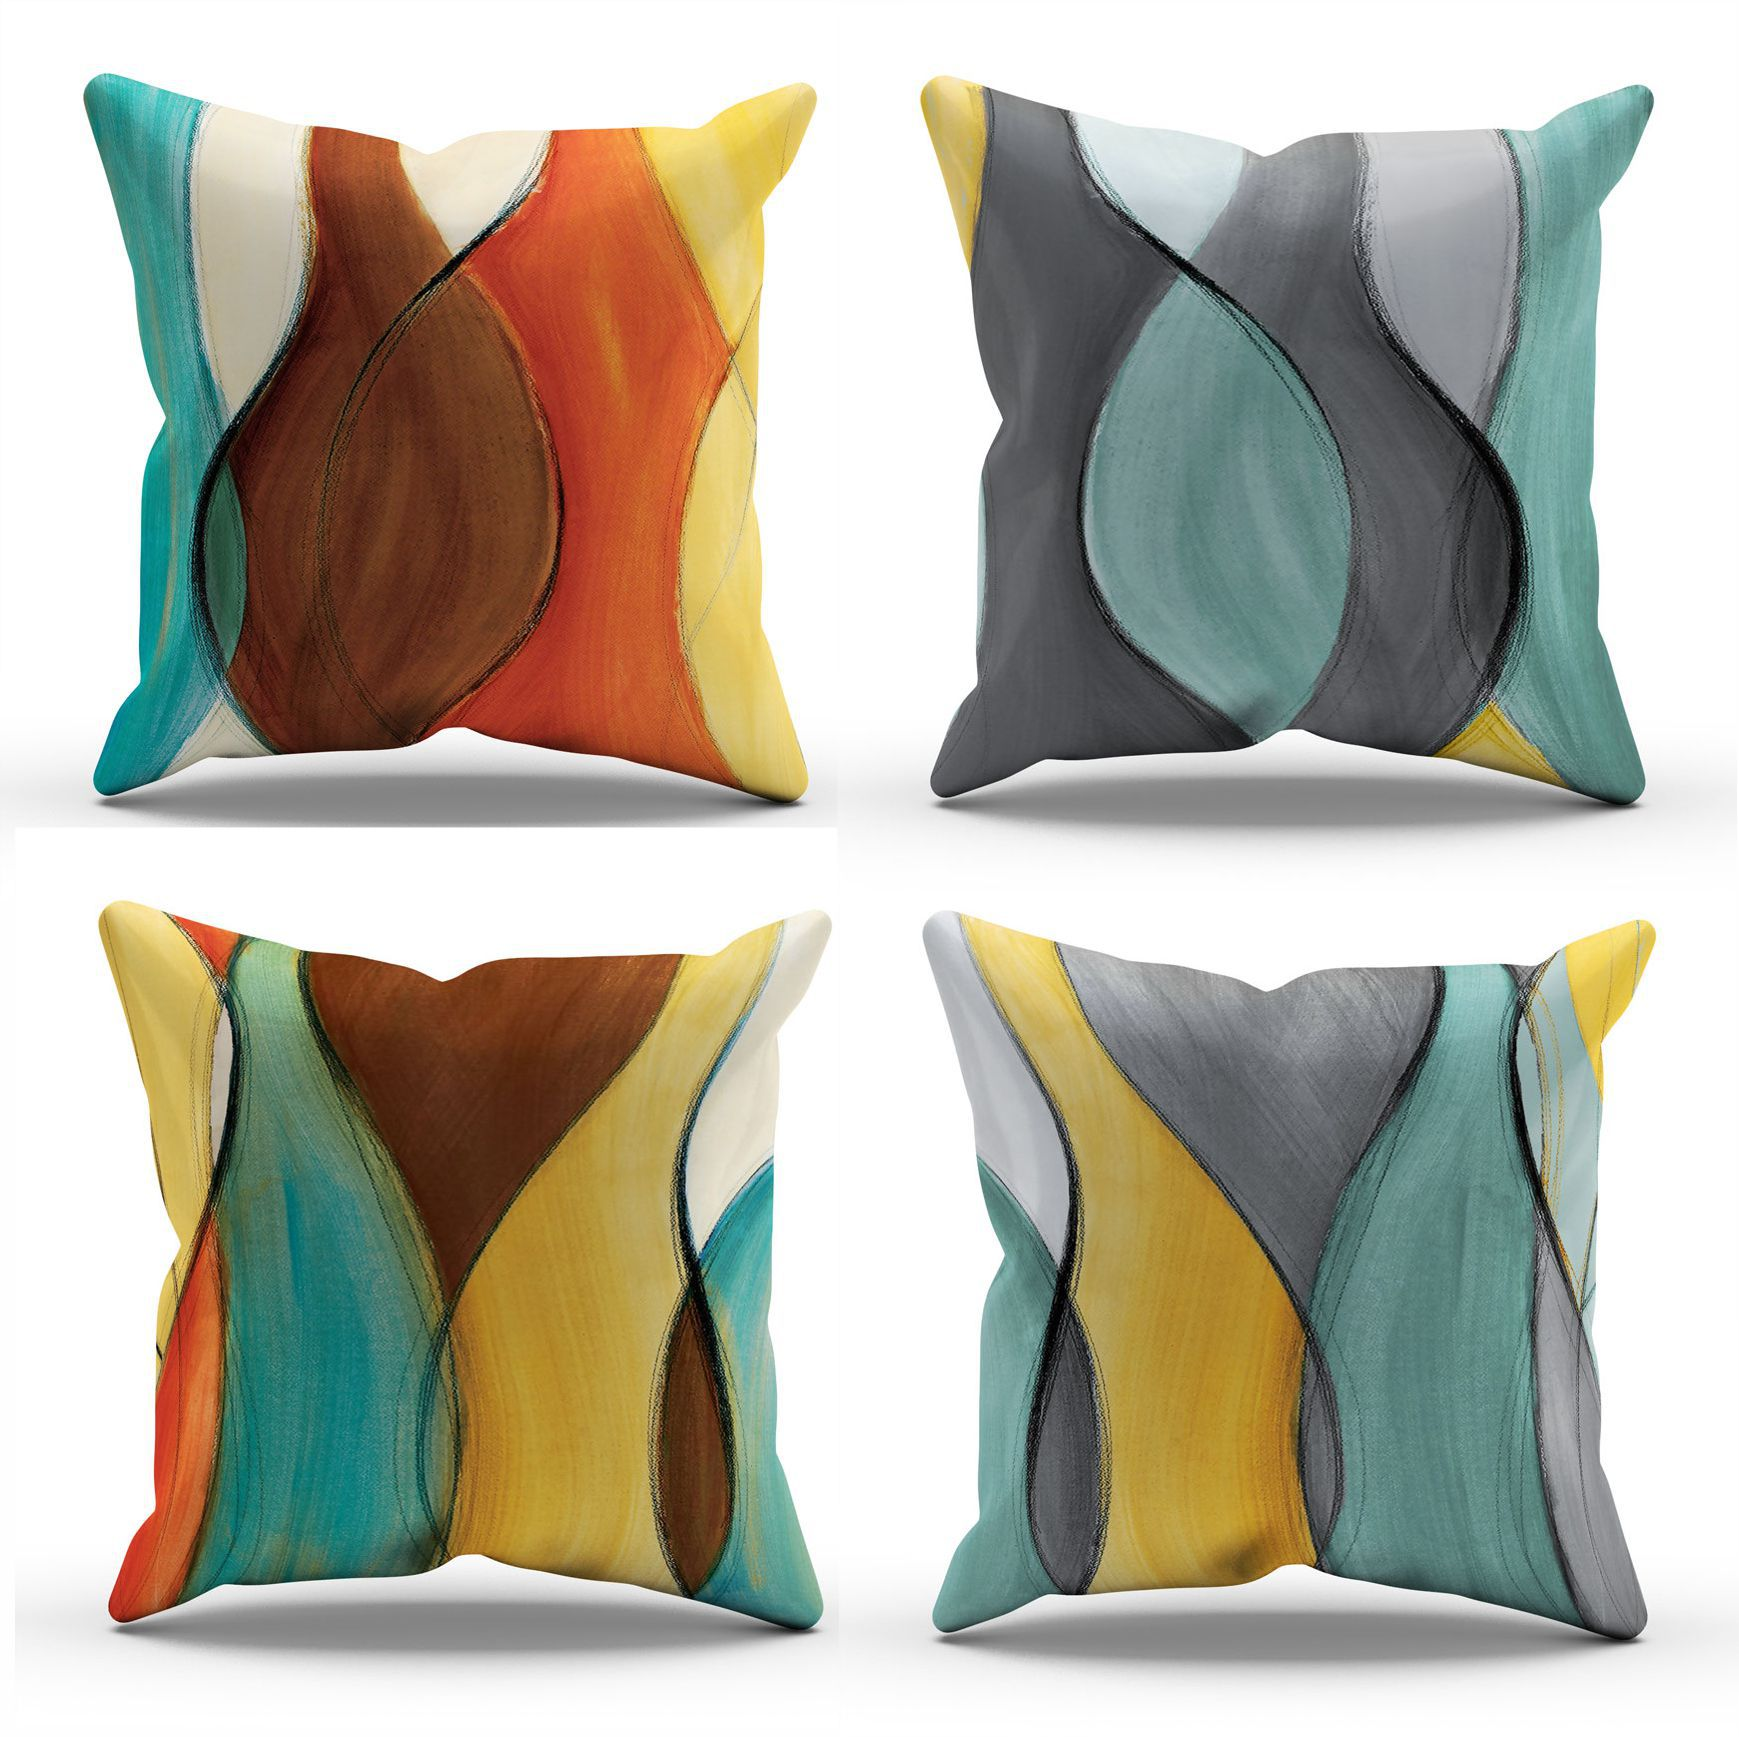 New Color Abstract Hand-painted Pillowcase Light Luxury Sofa Cushion Cover Design Suitable for Couch Living Room Car